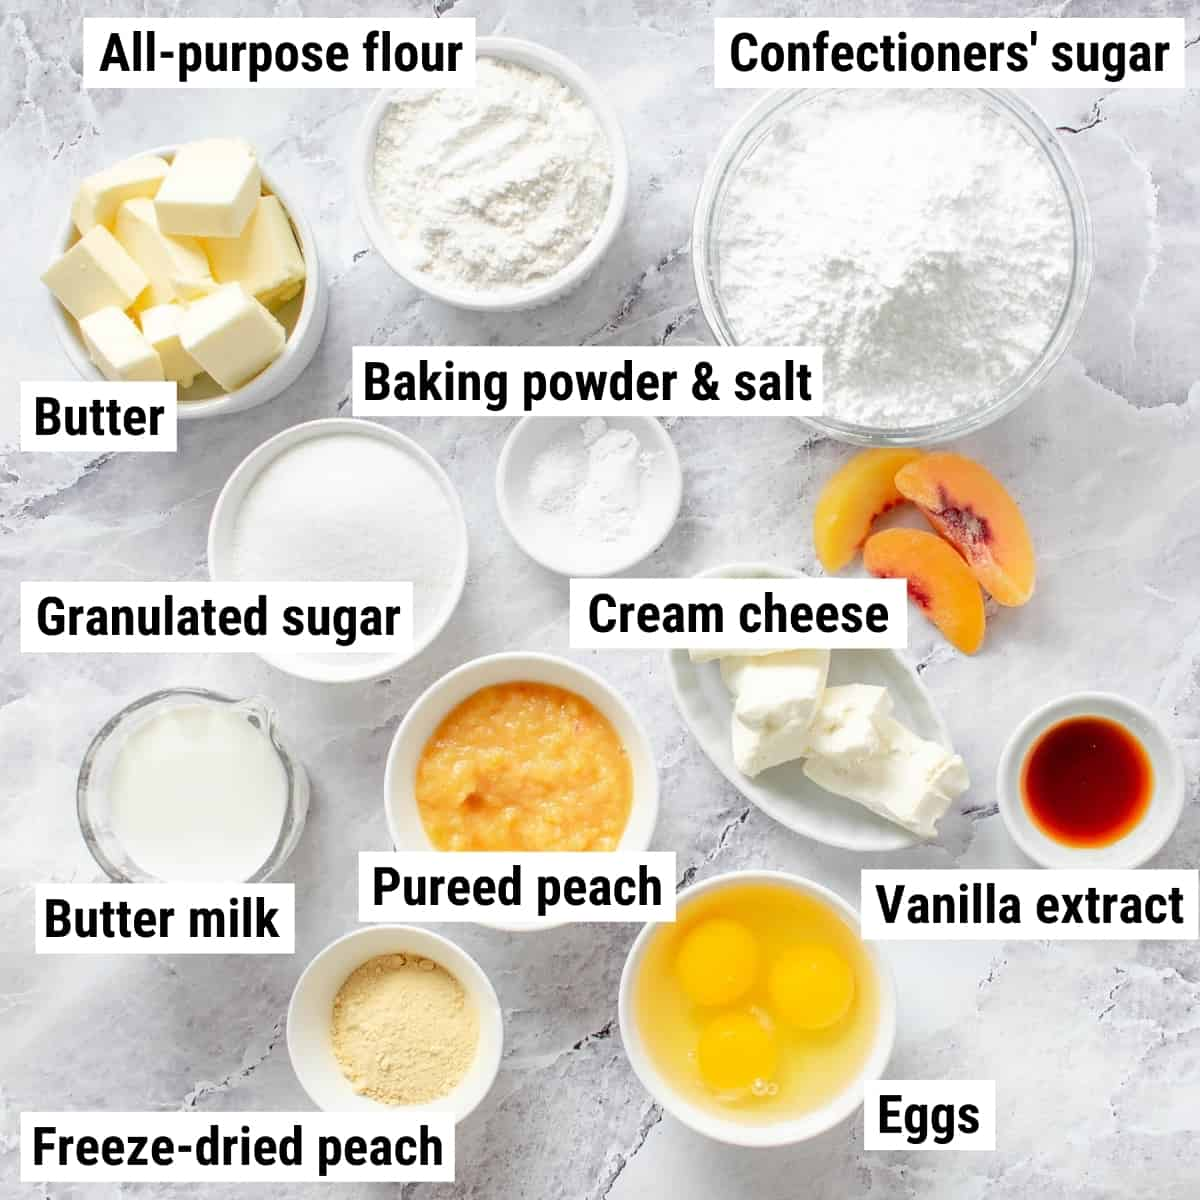 The ingredients to make peach cupcakes spread out on a table.